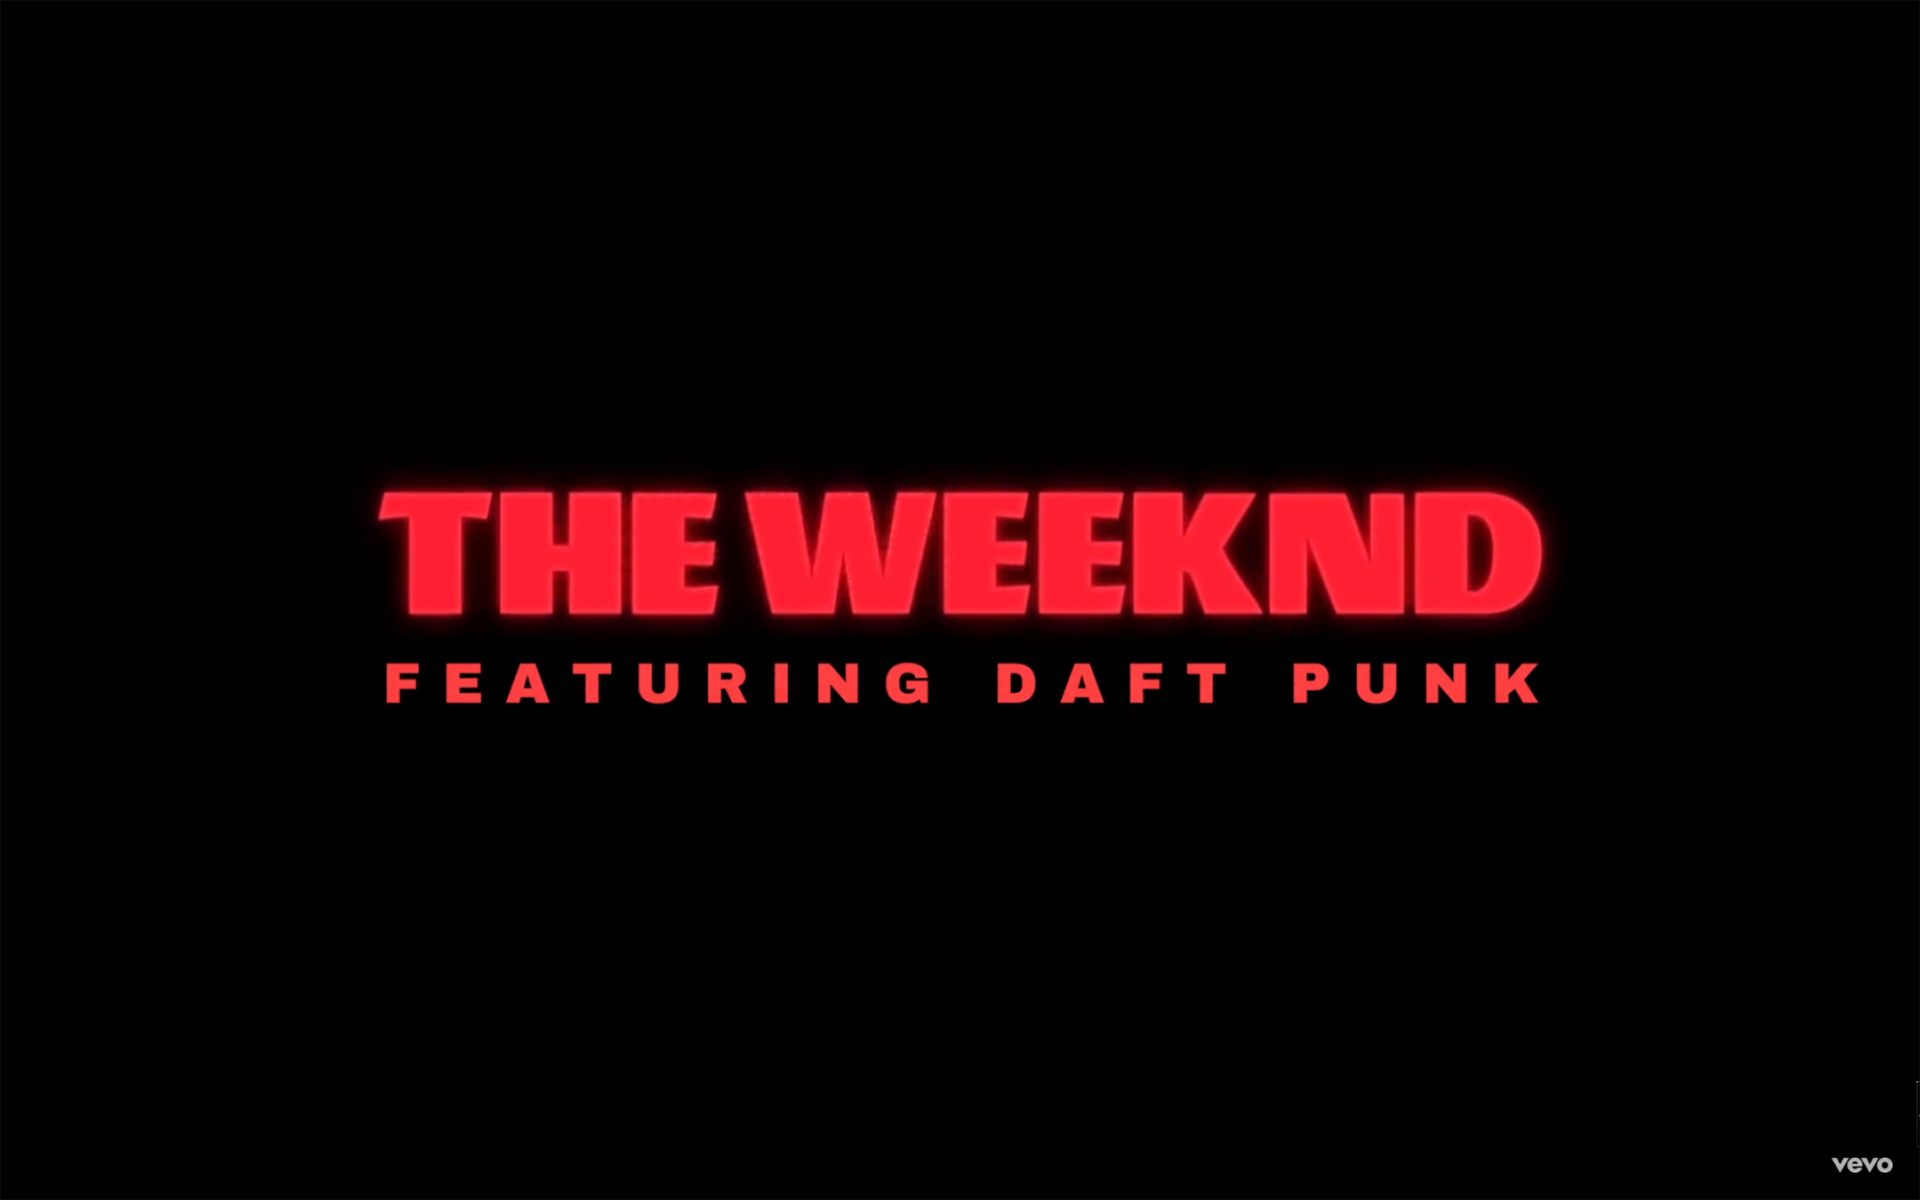 Starboy - The Weeknd - featuring Daft Punk - 2016 - picture cover